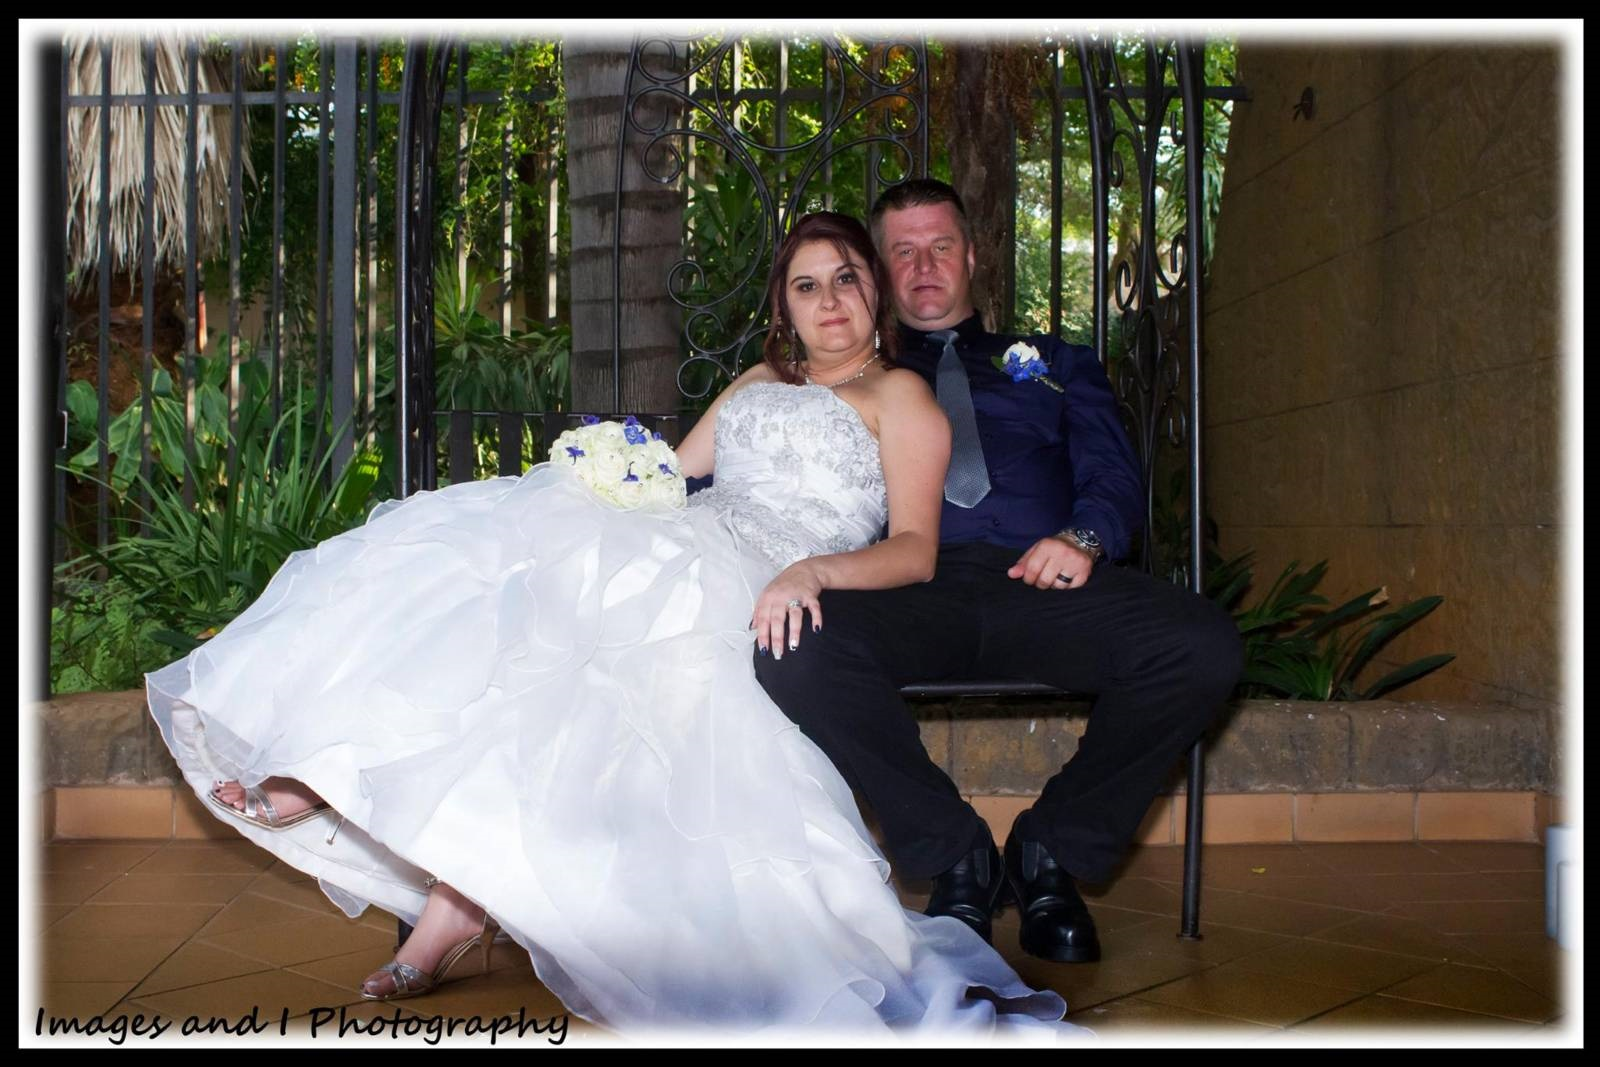 Bently's Country Lodge Wedding Photography Bench | Photoshoots Pretoria